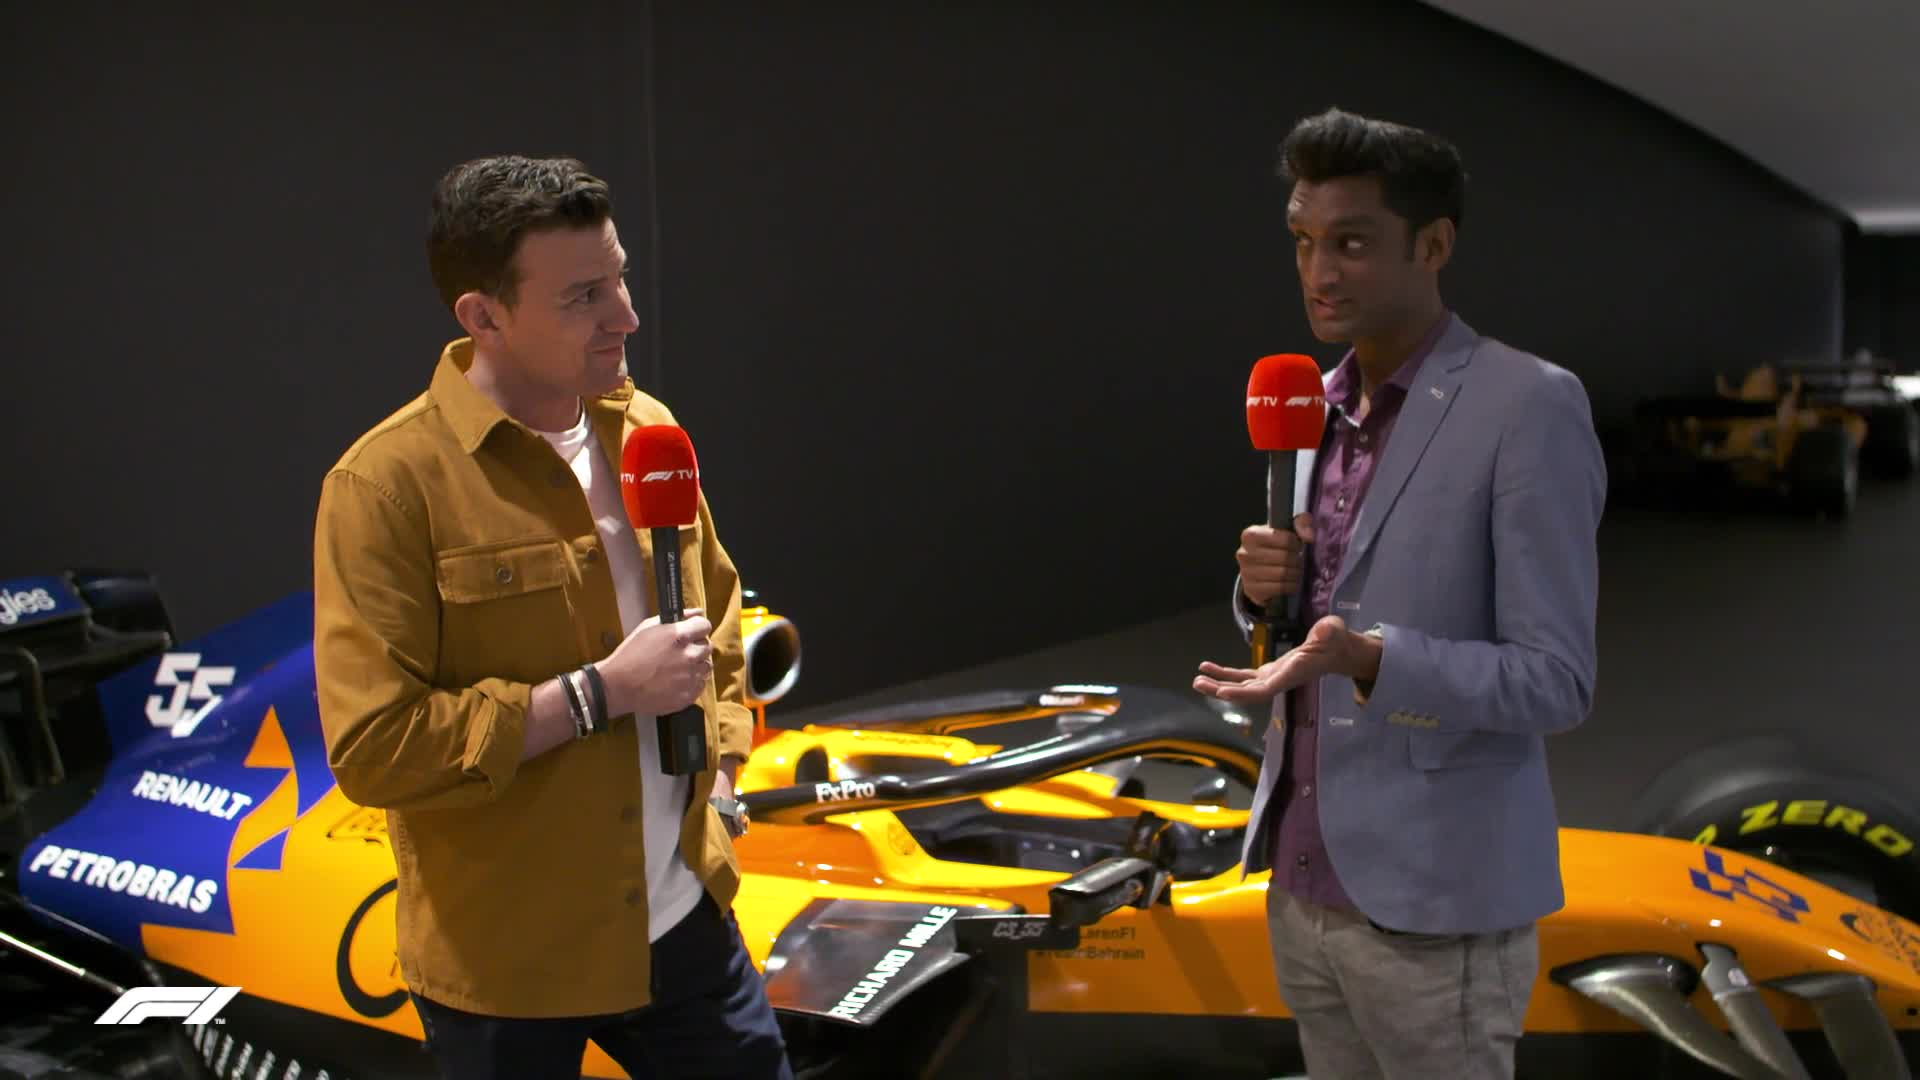 Inside McLaren's Car Launch